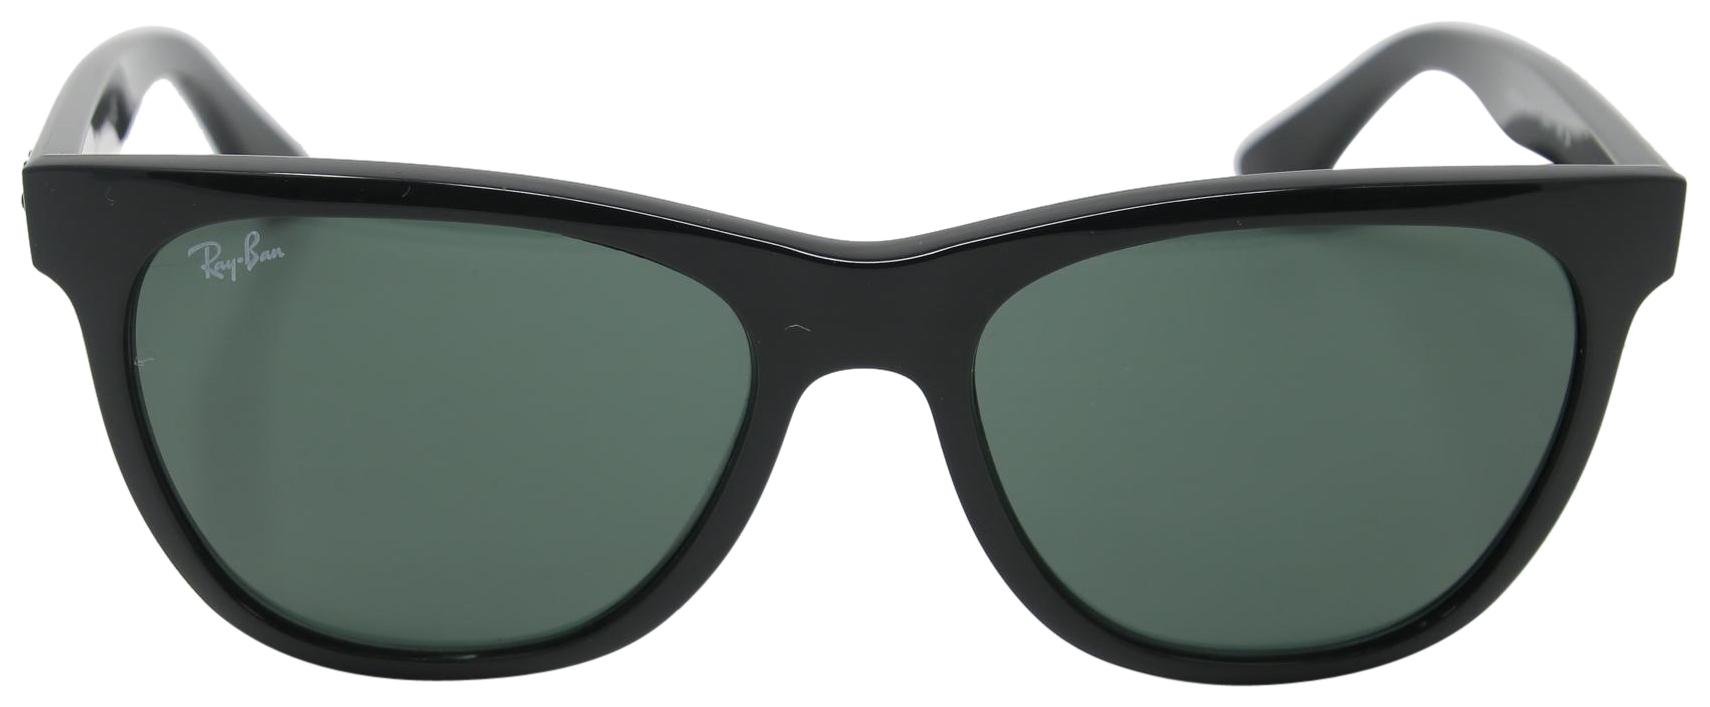 7c70f3ee579 ... coupon code ray ban signature high street black frame crystal polarized  green lenses 2d393 495a1